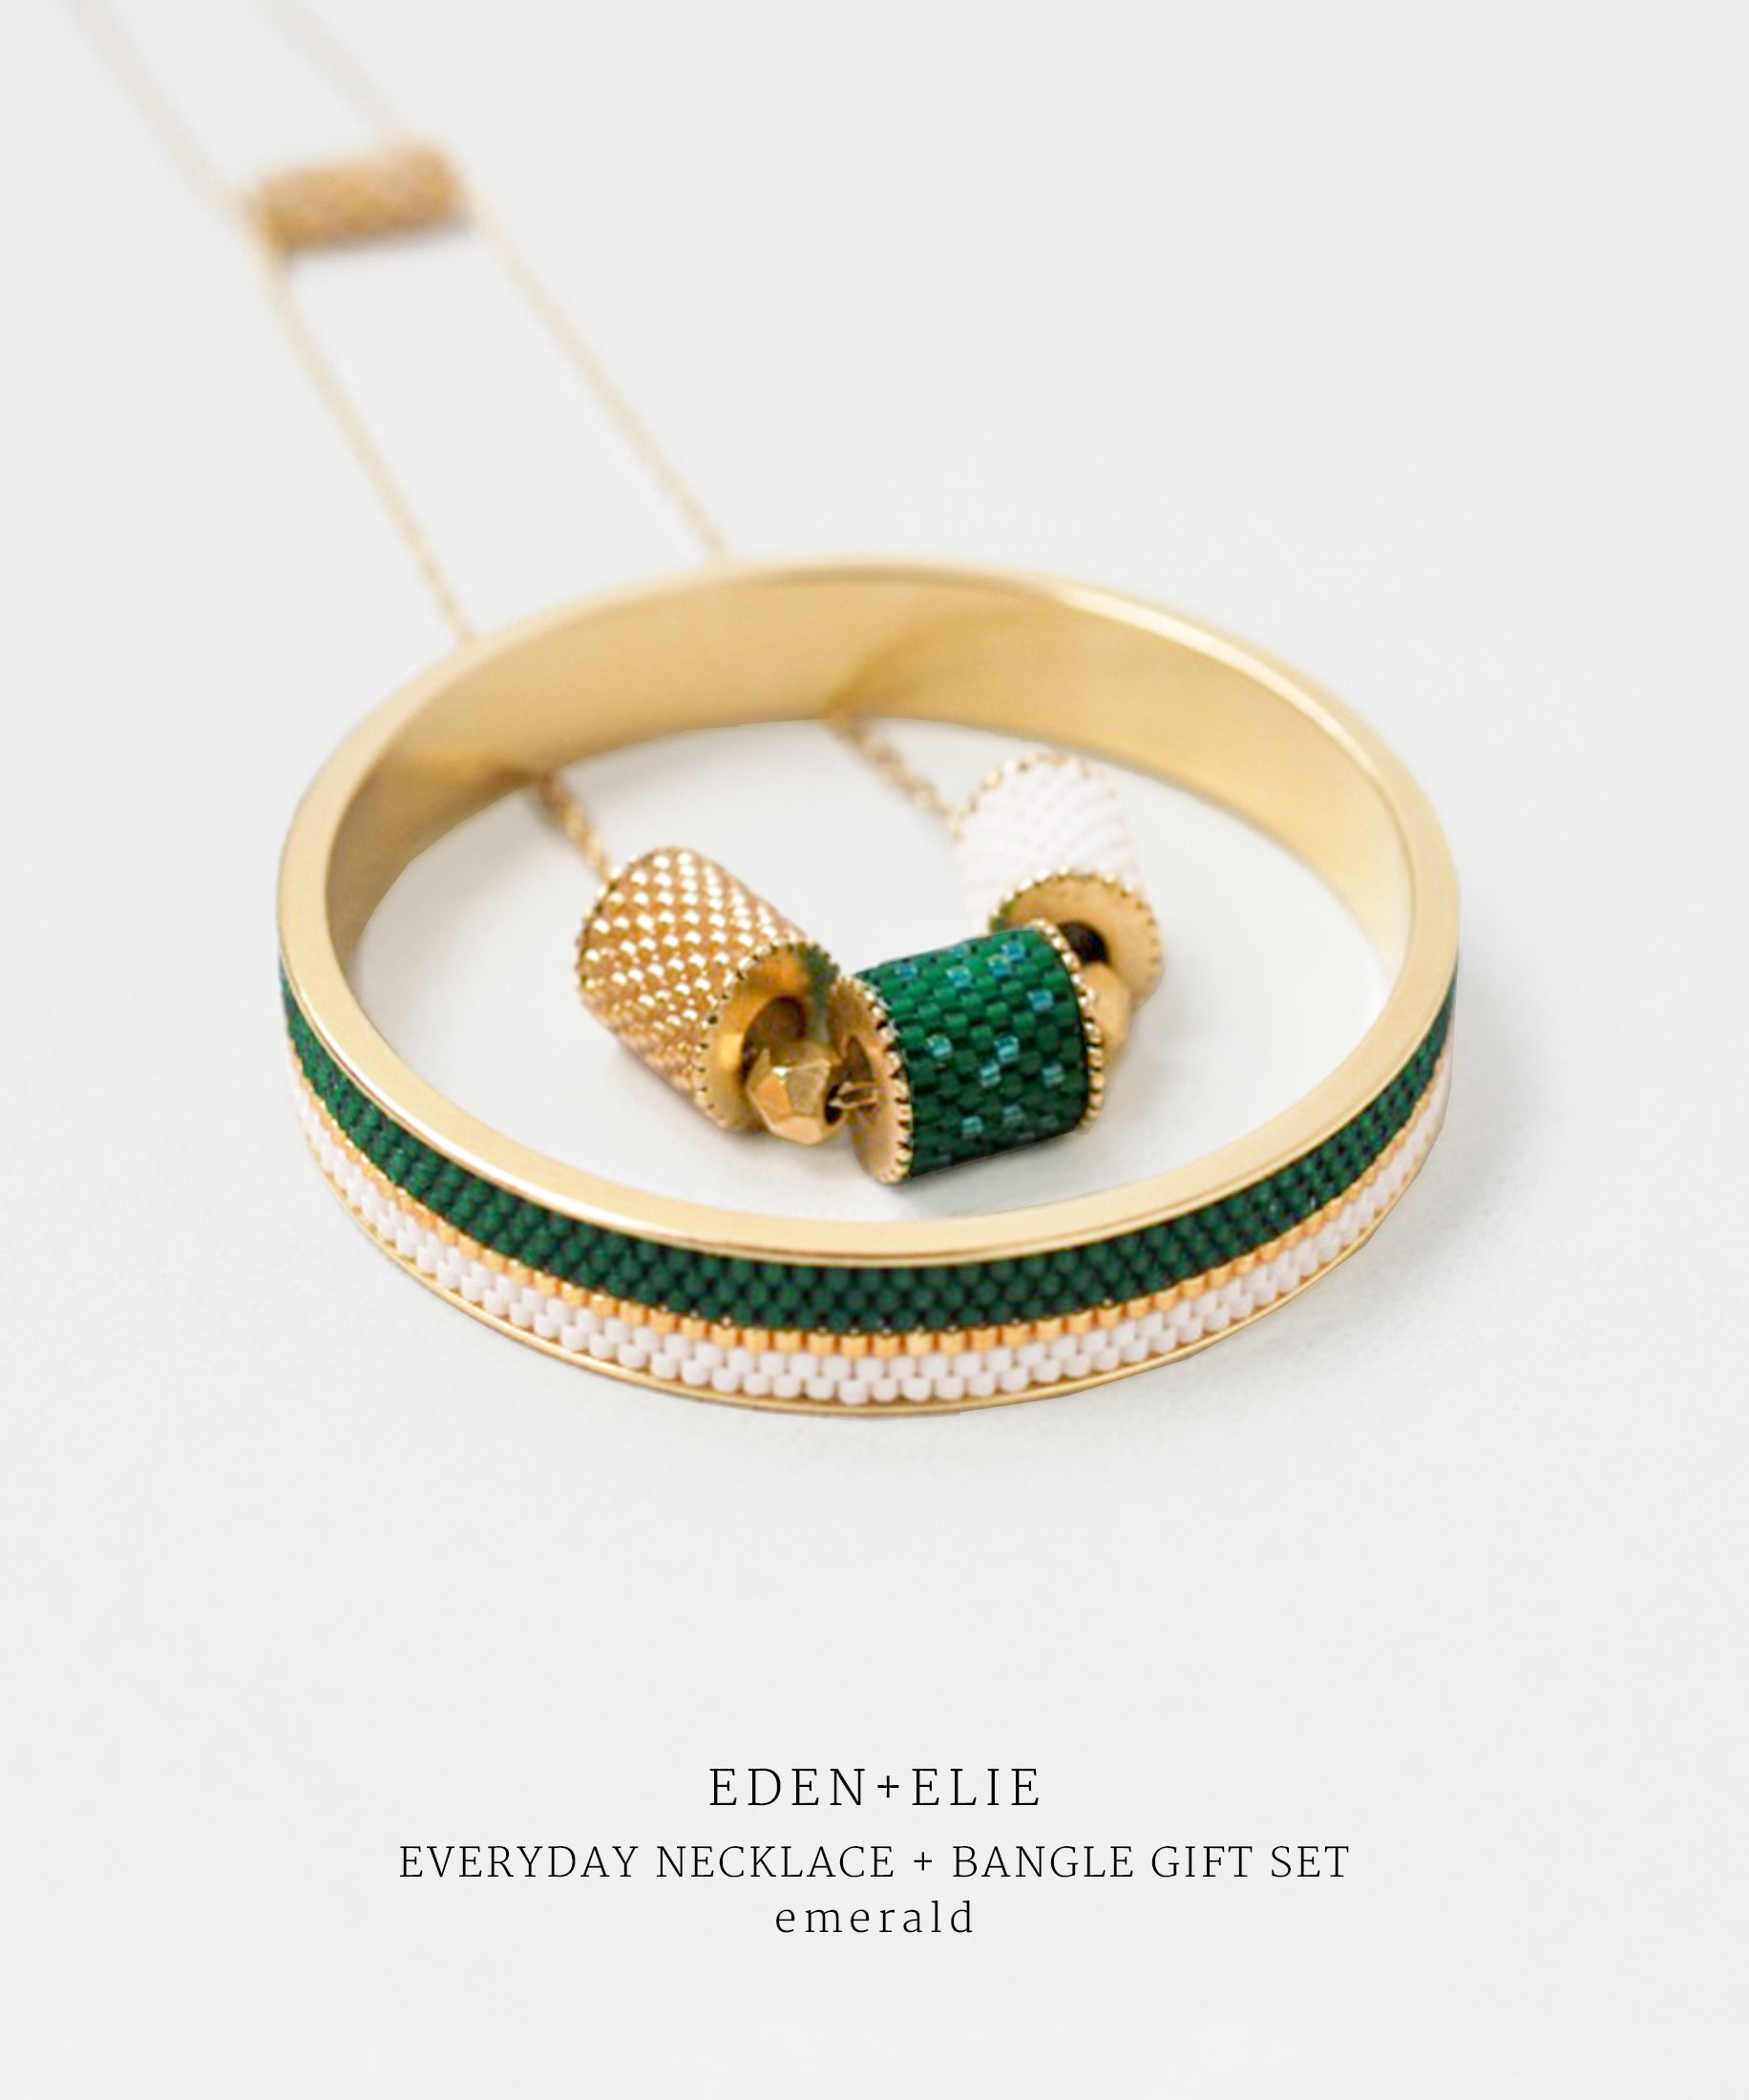 EDEN + ELIE Everyday adjustable length necklace + bangle set - emerald green